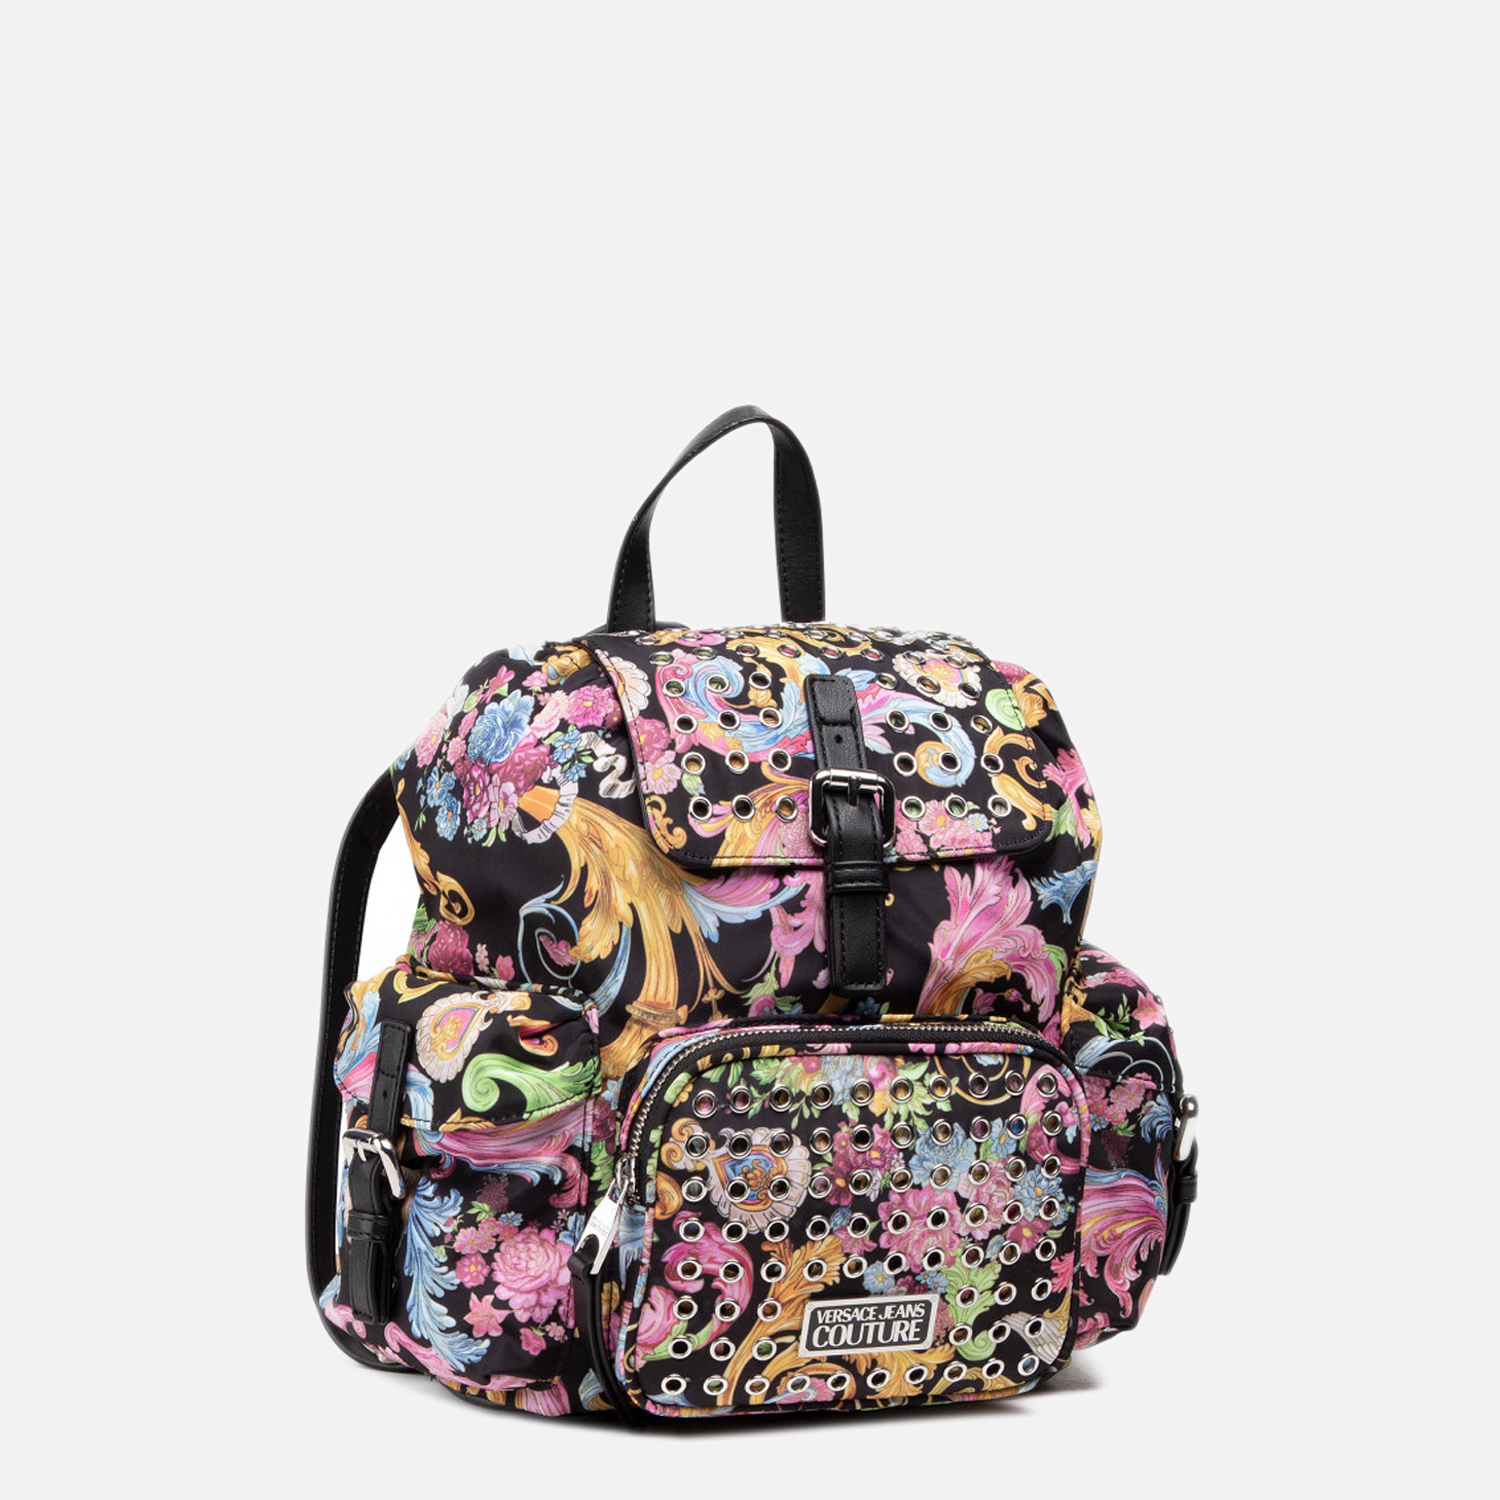 Versace Jeans Couture Backpacks BACKPACK BAG WITH COLORED BAROQUE FANTASY